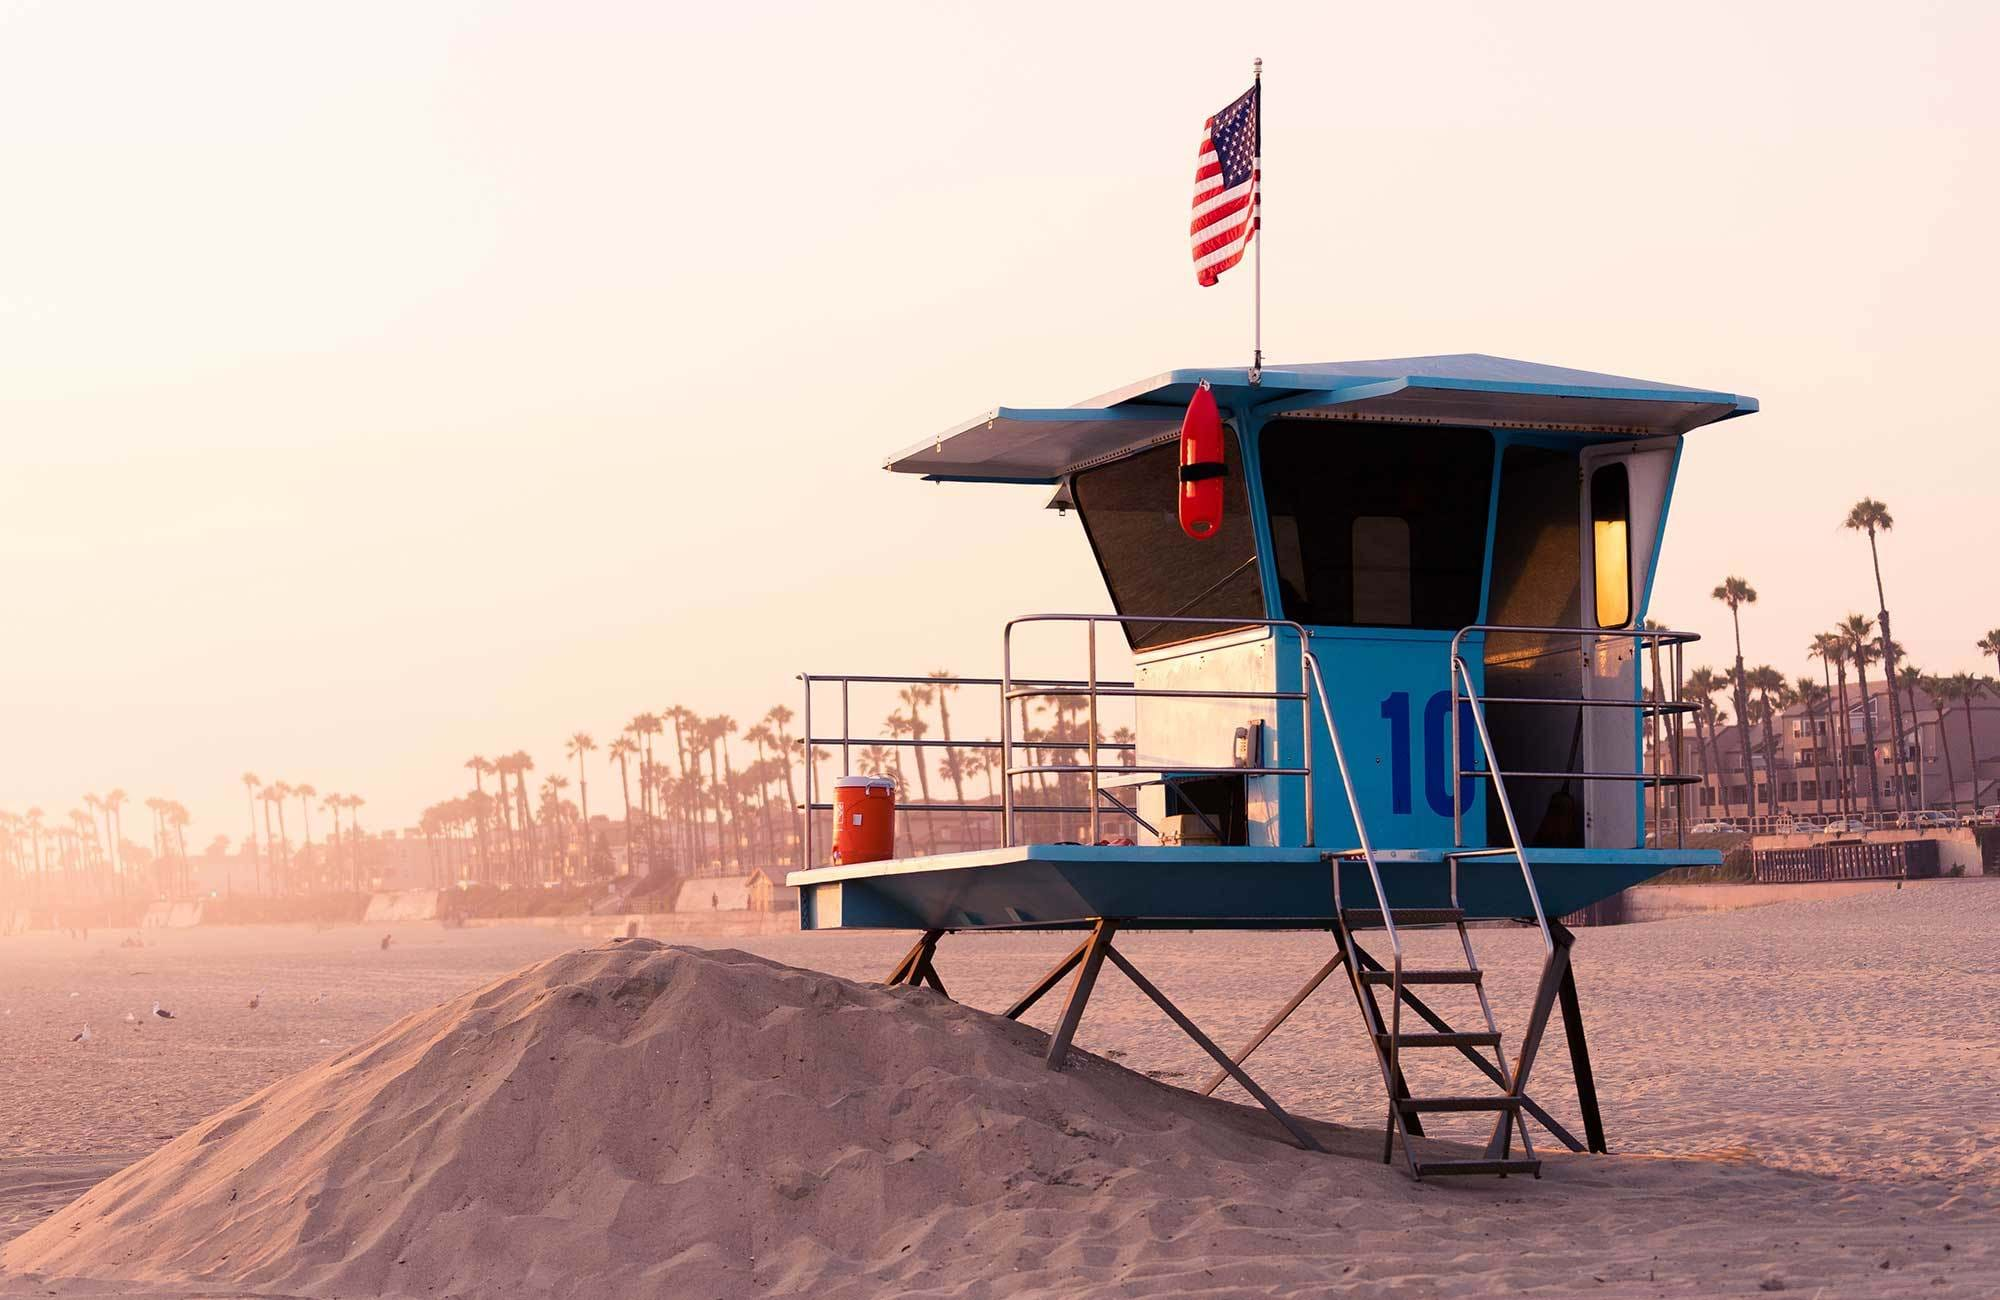 los-angeles-huntington-beach-usa-lifeguarding-station